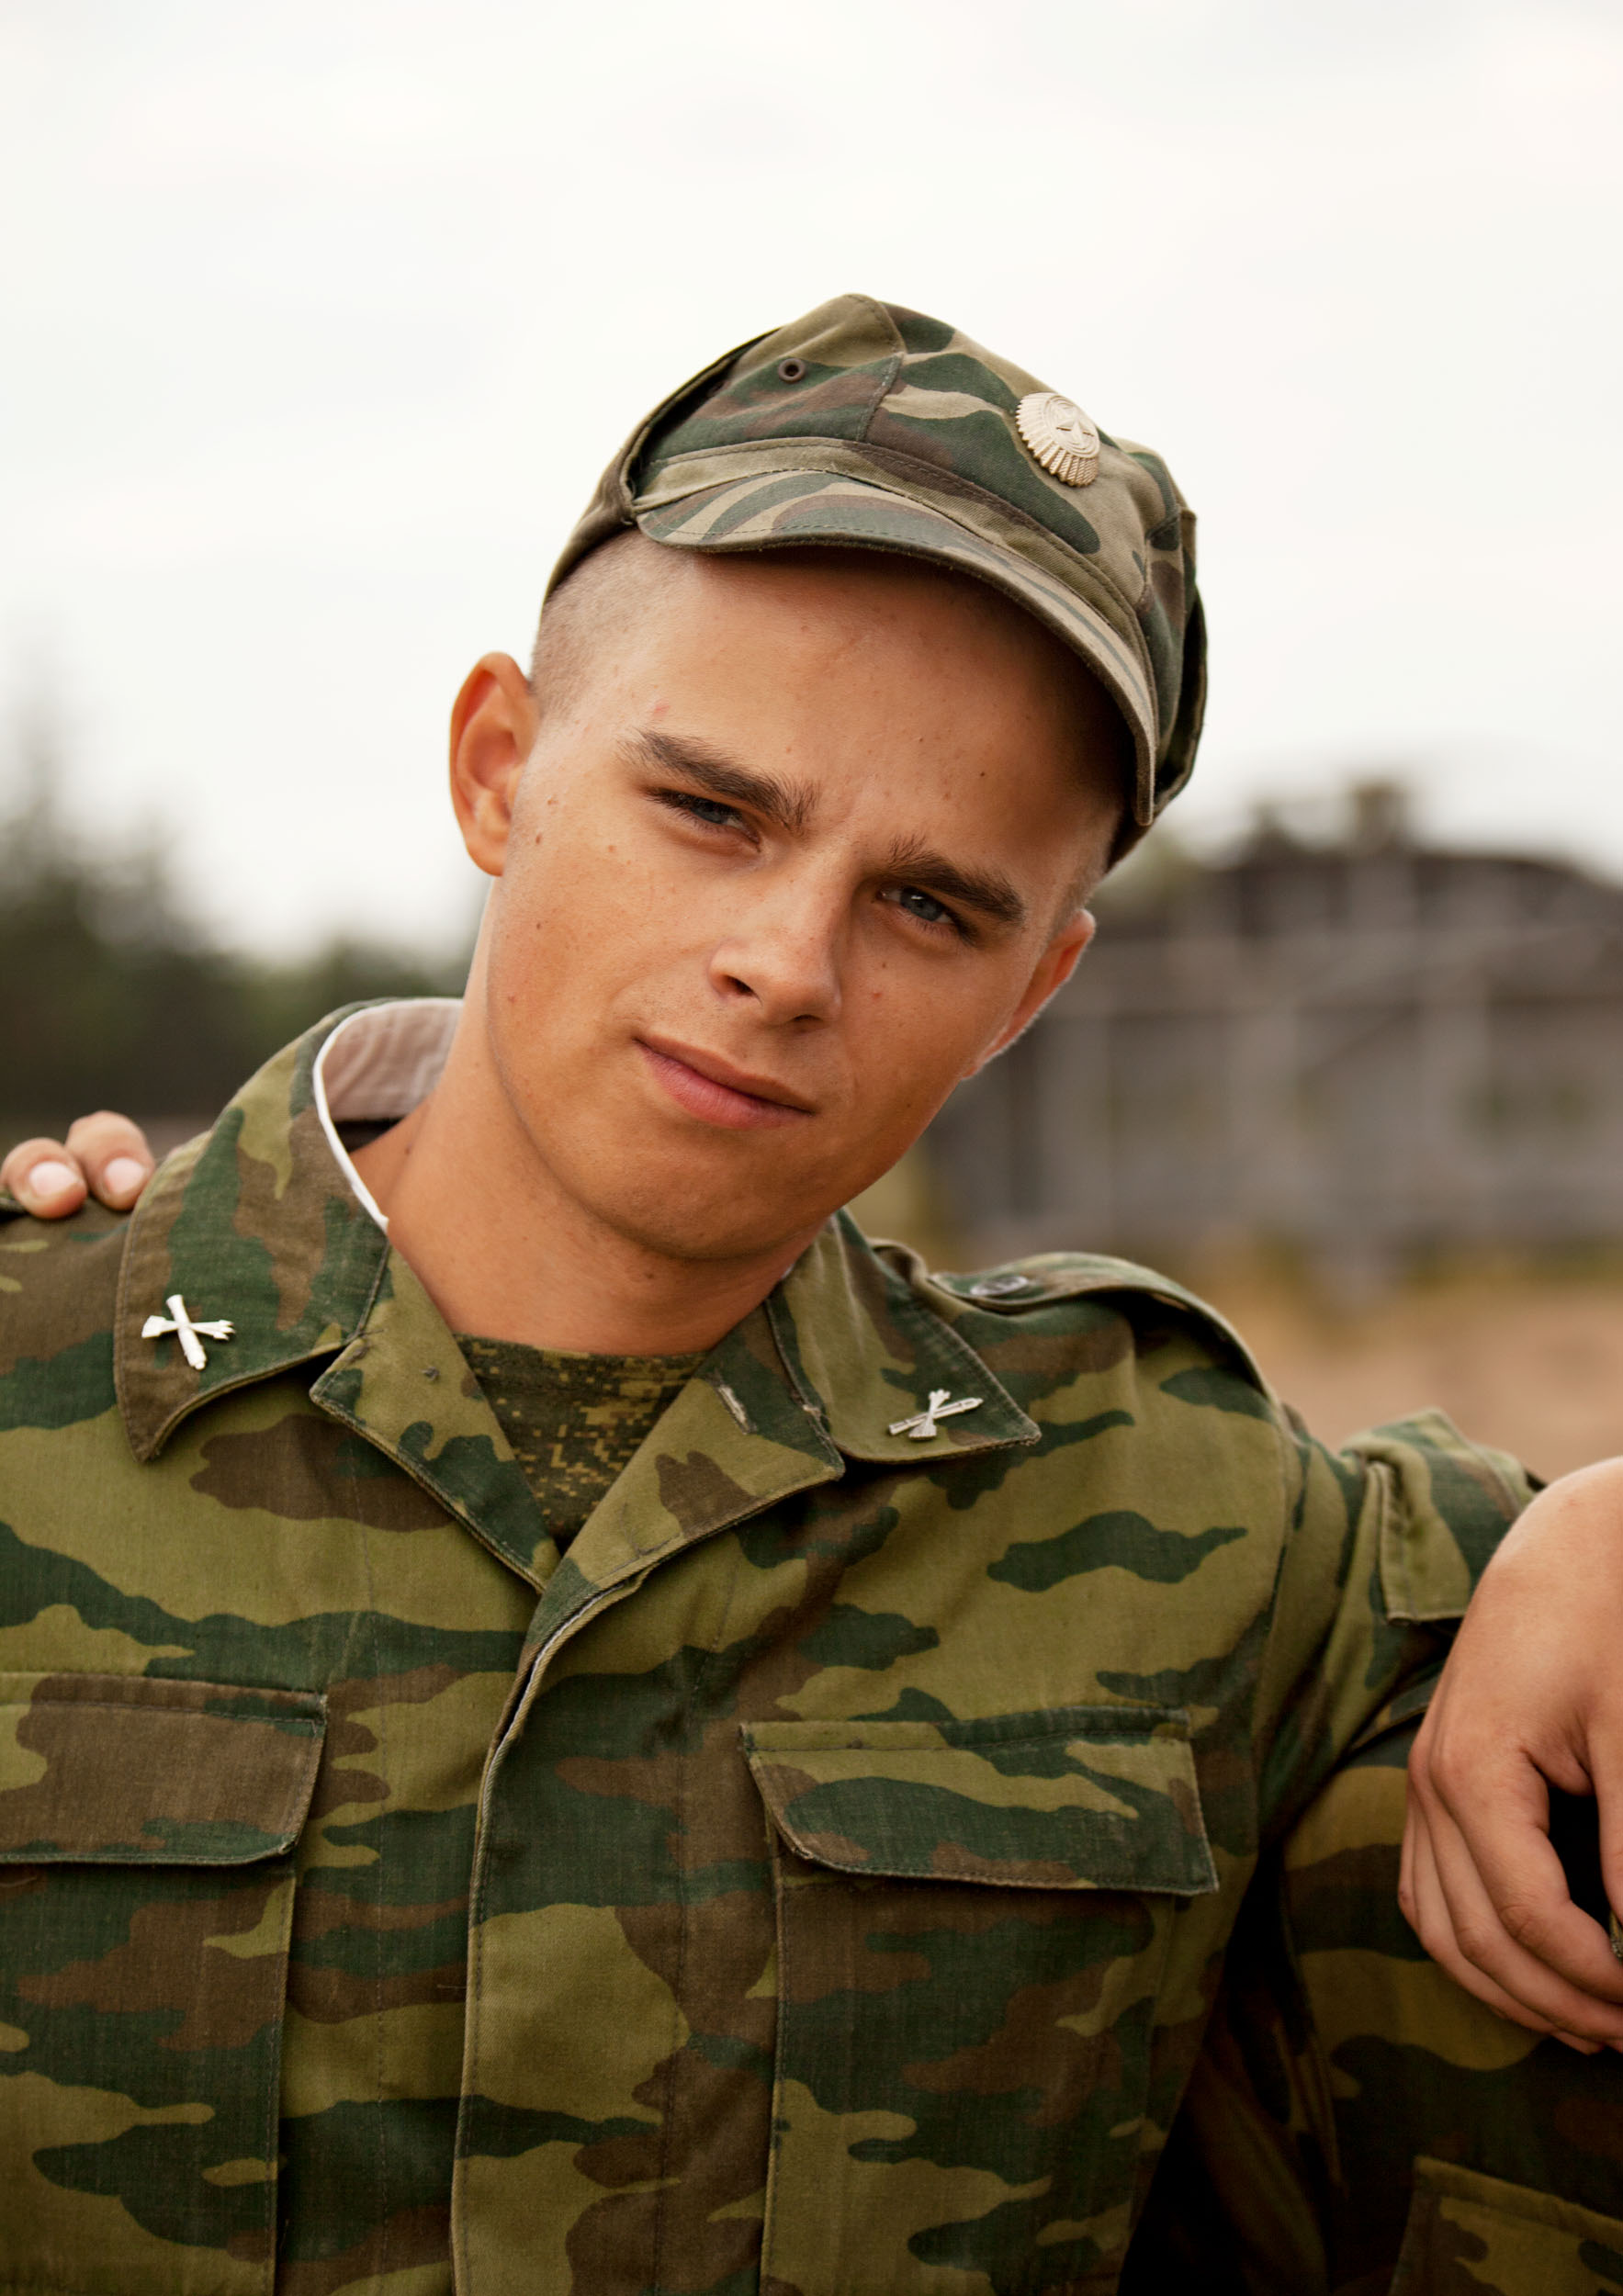 Young Soldier 1  2011, archival pigment print 134 x 95 cm / 53 x 37.5 in. Edition of 5